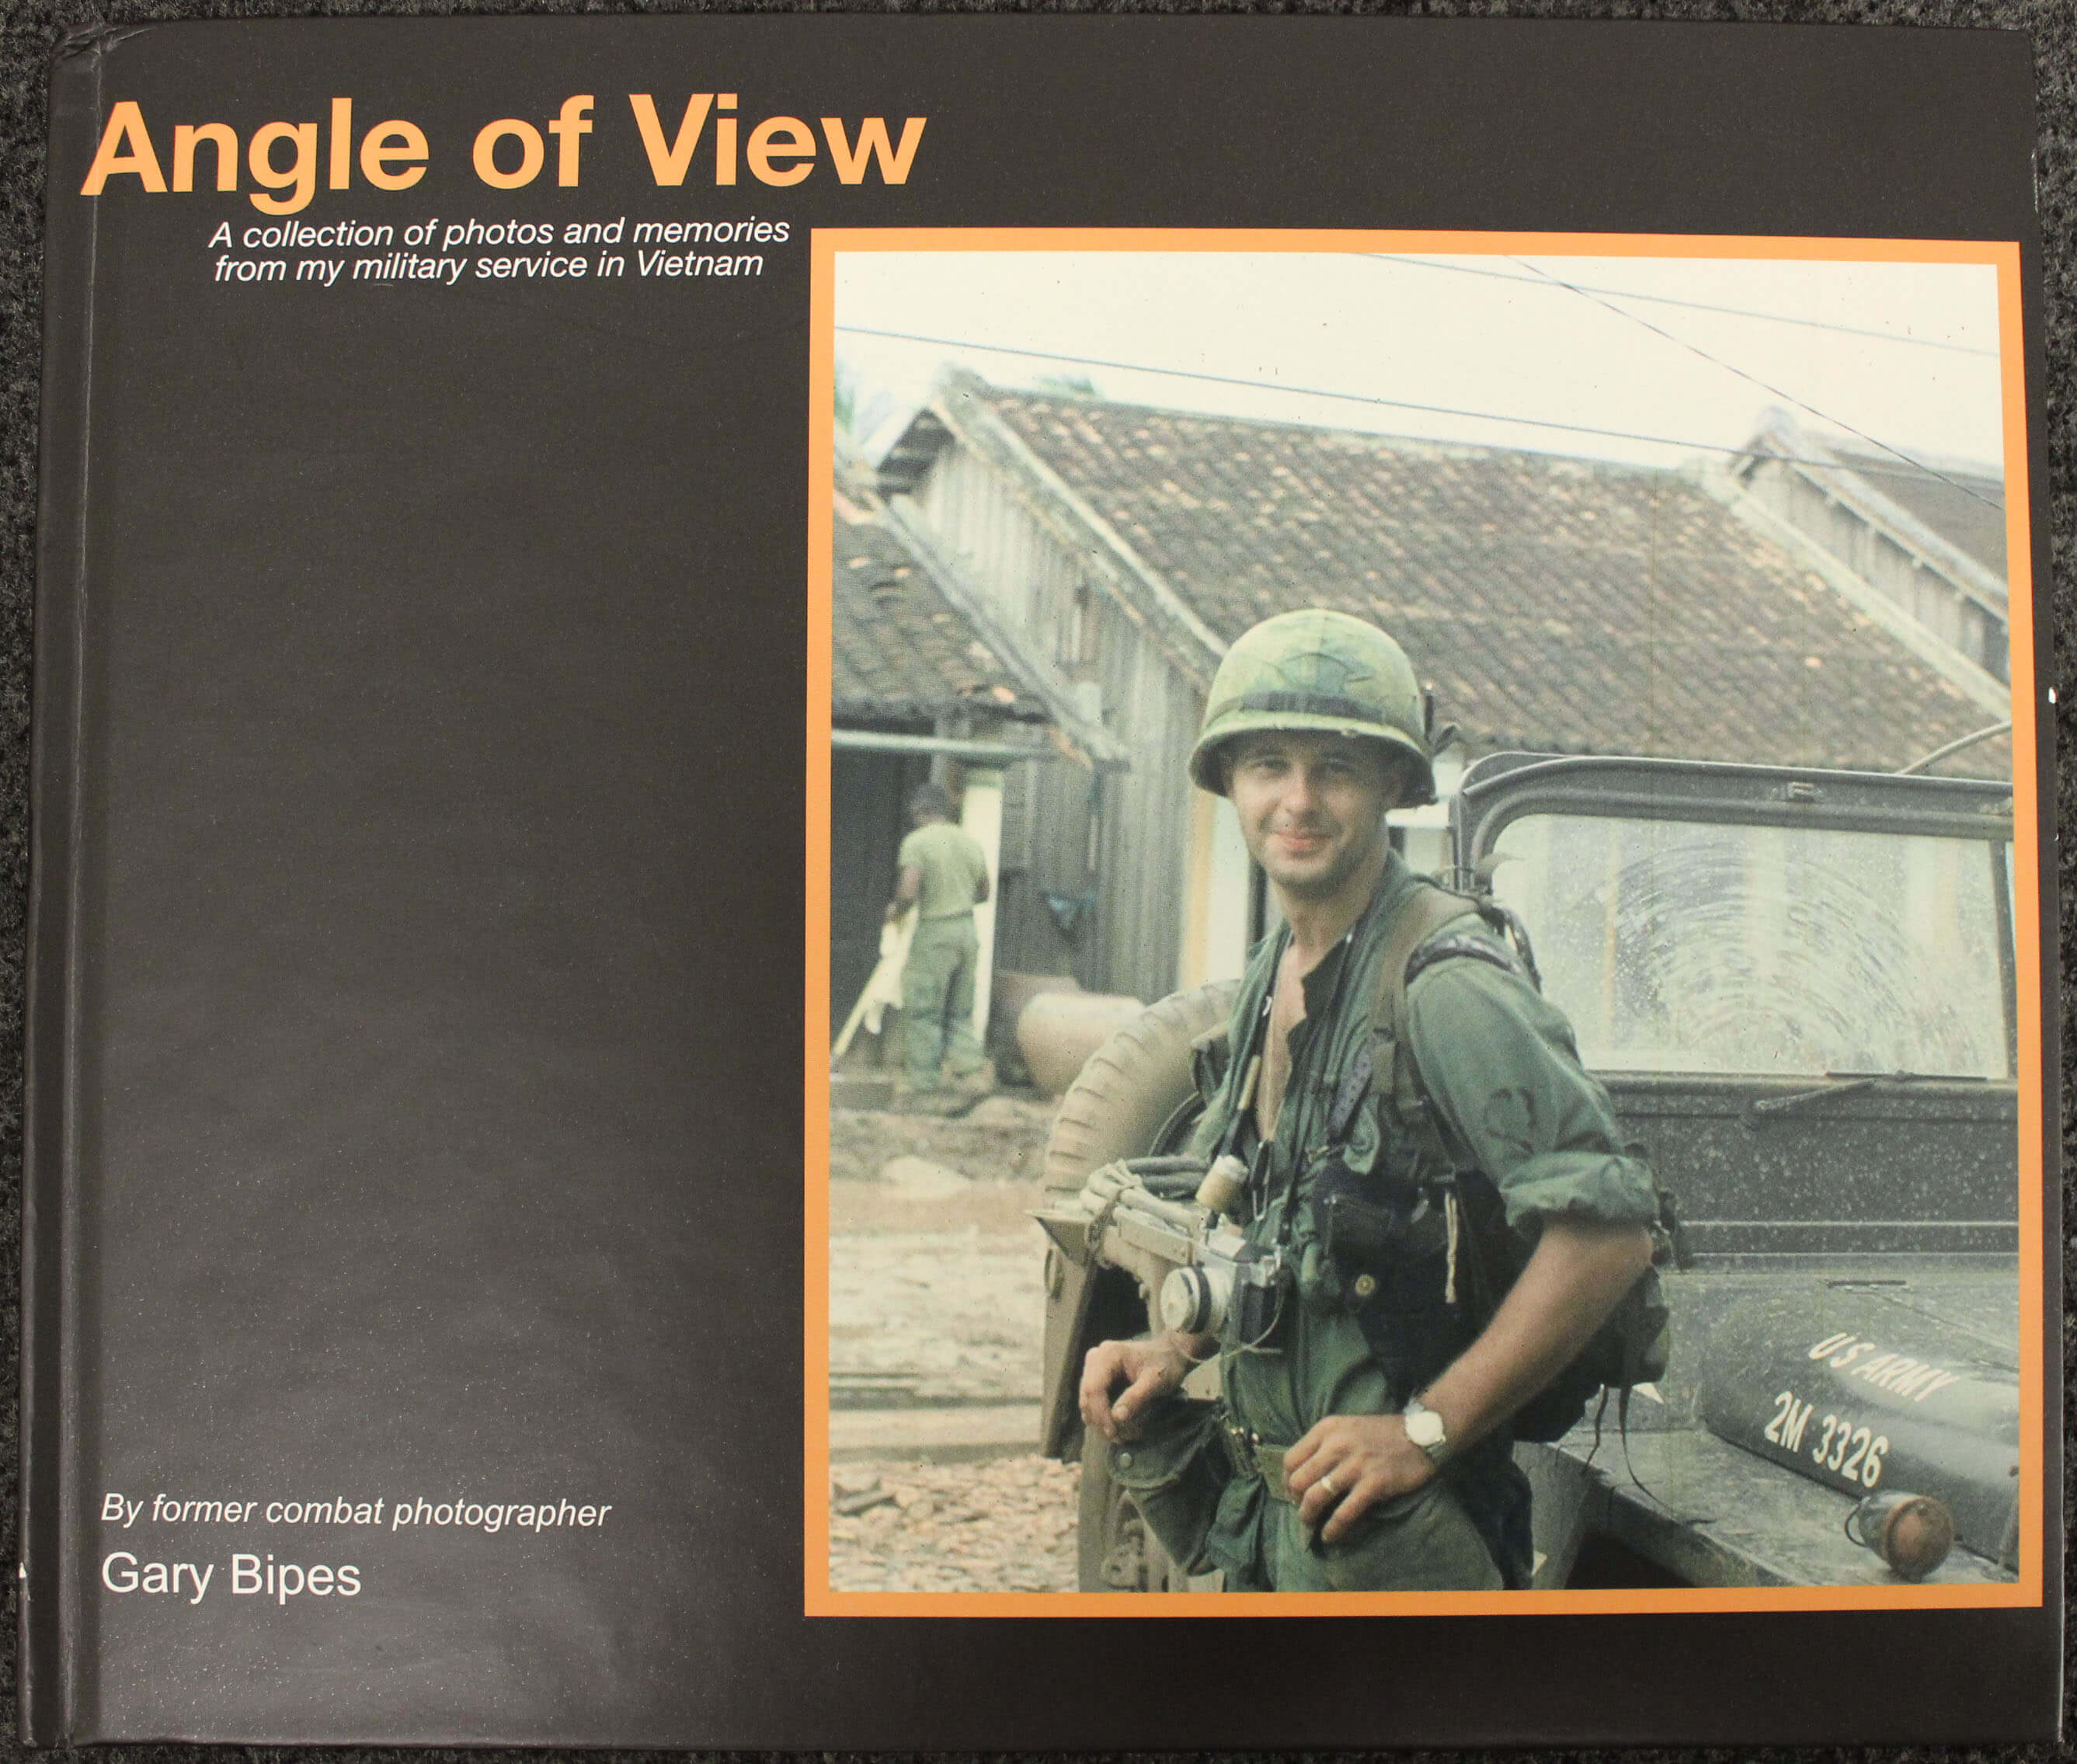 """Cover of a book: """"Angle of View: A Collection of Photos and Memories from my Military Service in Vietnam"""" - photo is of a young man in uniform and helmet with a camera around his neck."""